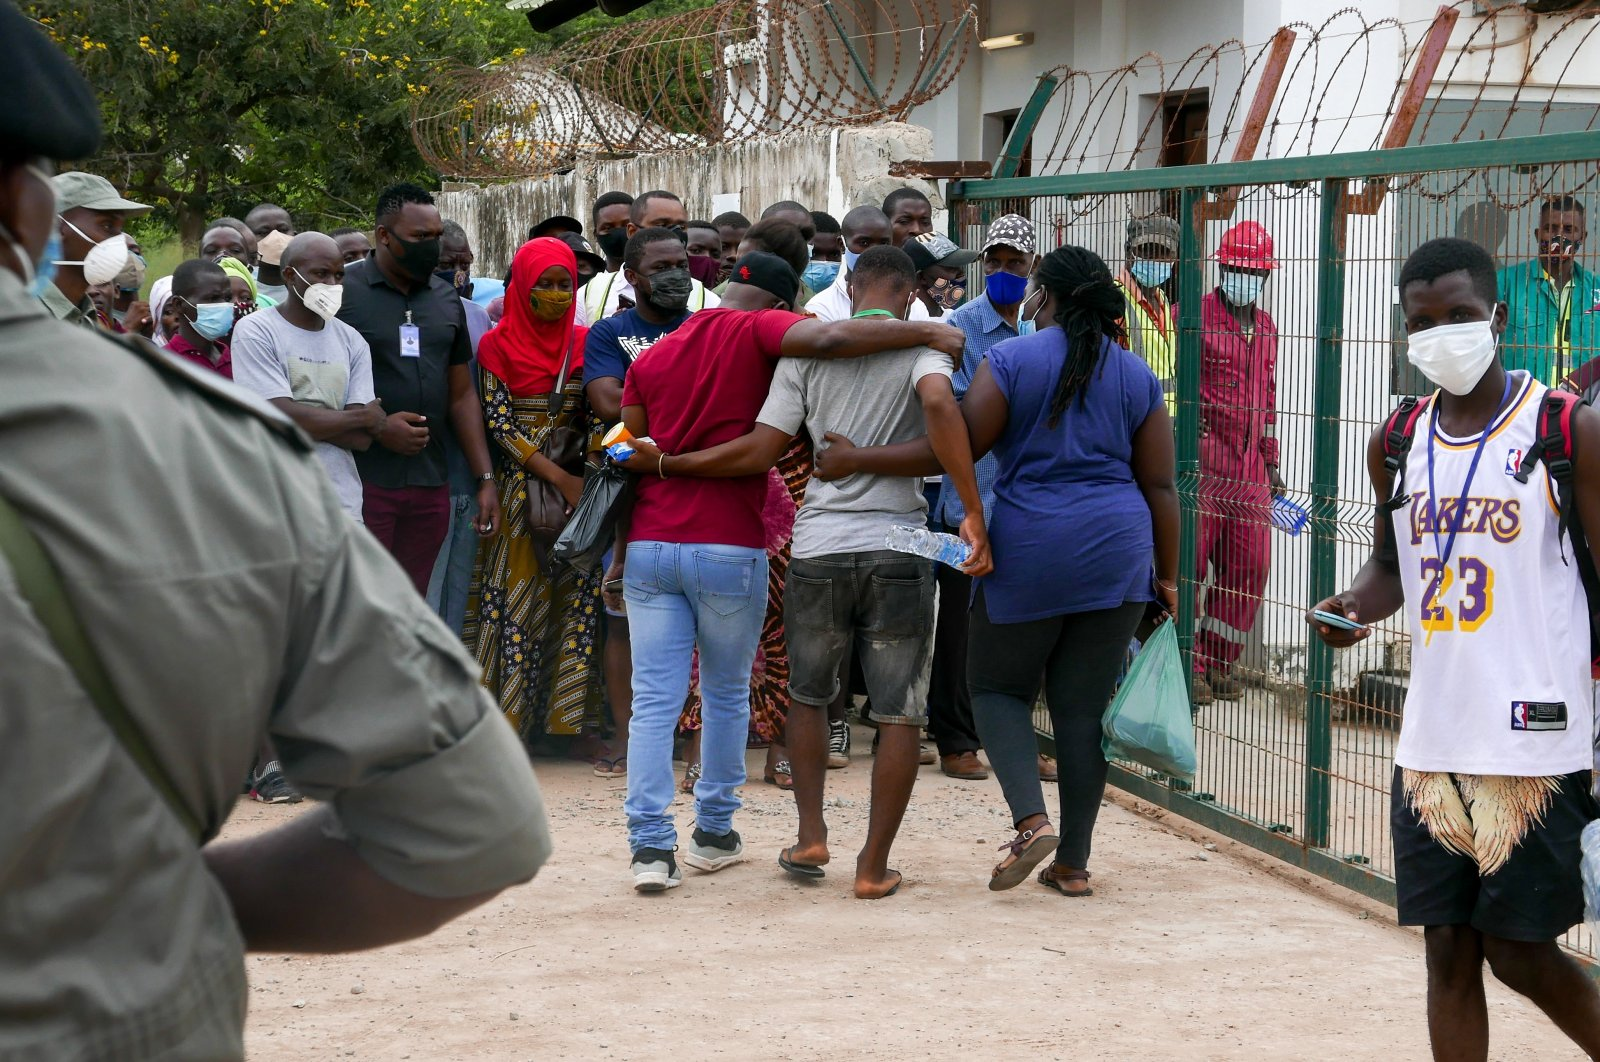 Family members welcome a displaced relative arriving at the port of Pemba on a boat carrying 1200 displaced people from Palma, in Pemba, Mozambique, April 1, 2021. (EPA)